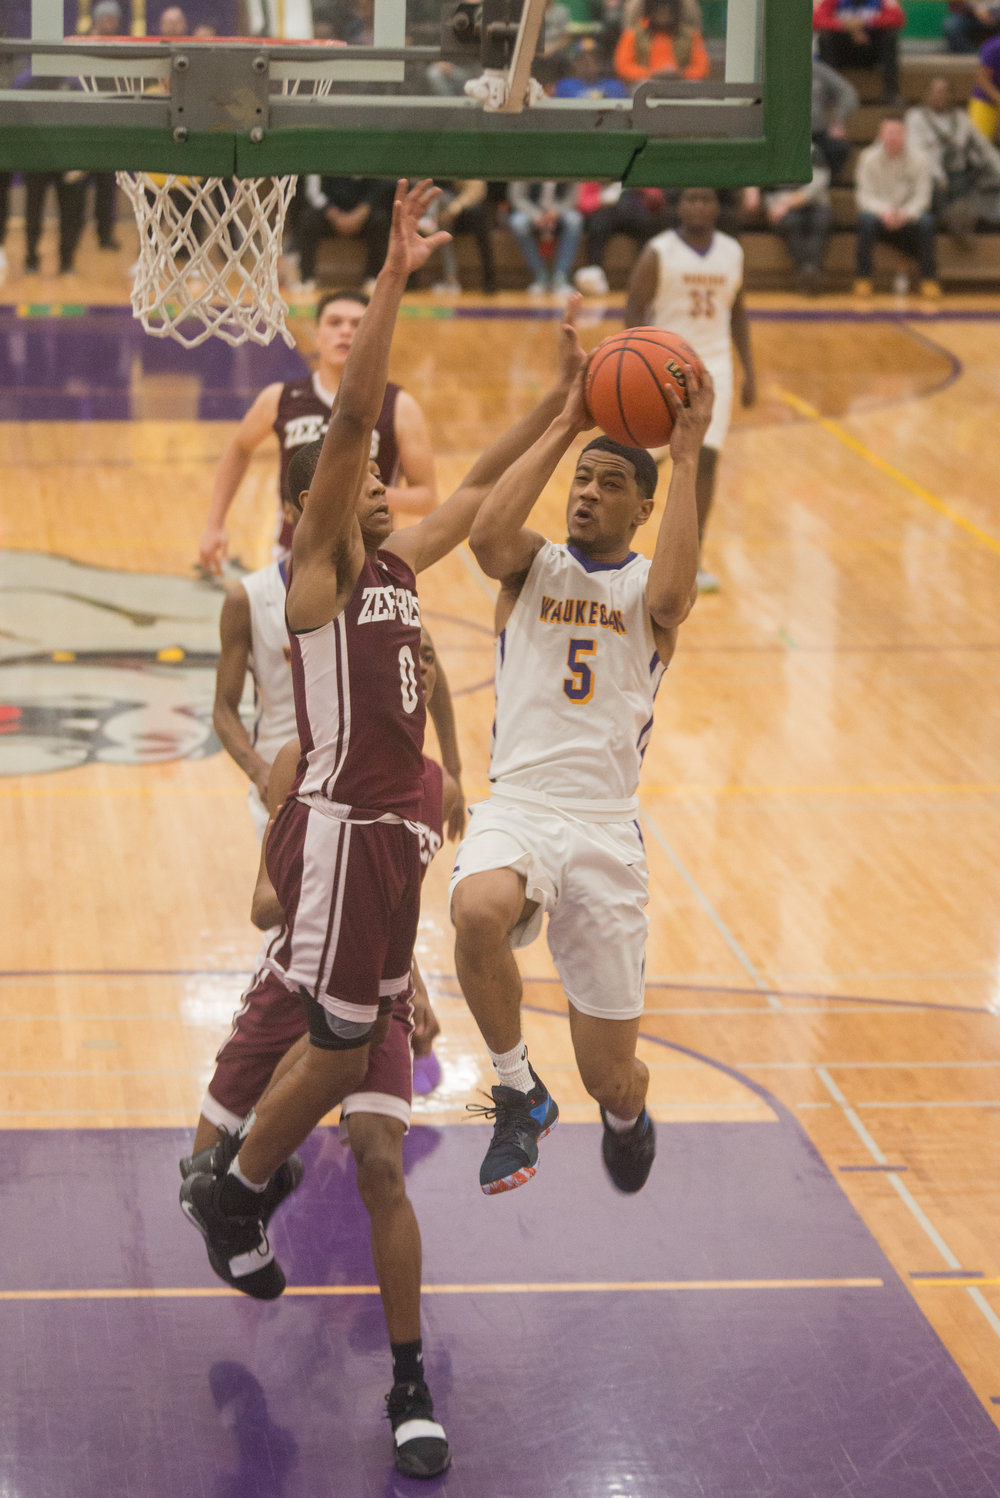 35-Jordan-Brown-goes-up-for-layup-vs-Zion-Benton.jpg